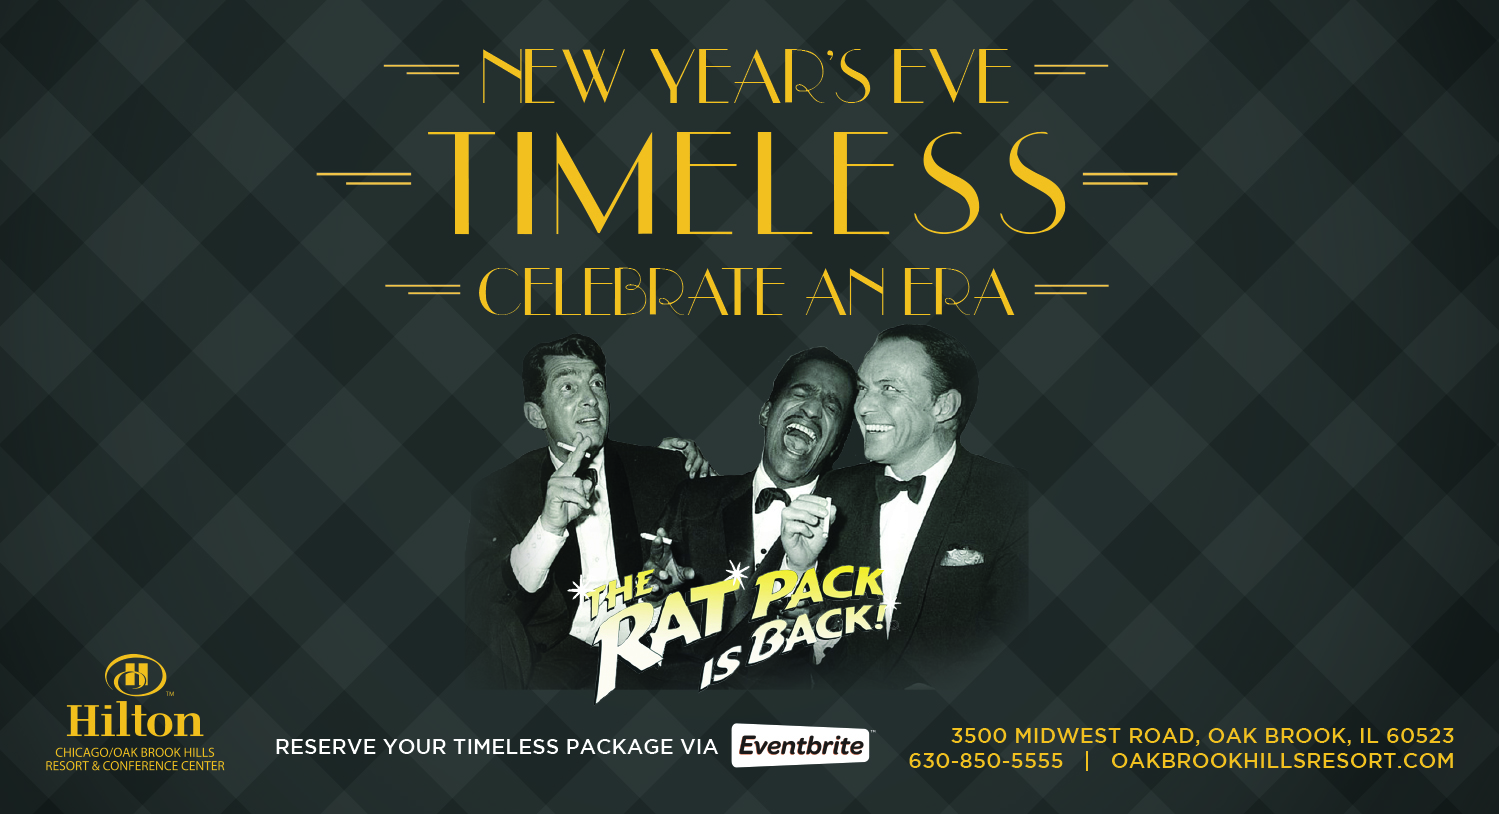 Timeless New Year's Eve